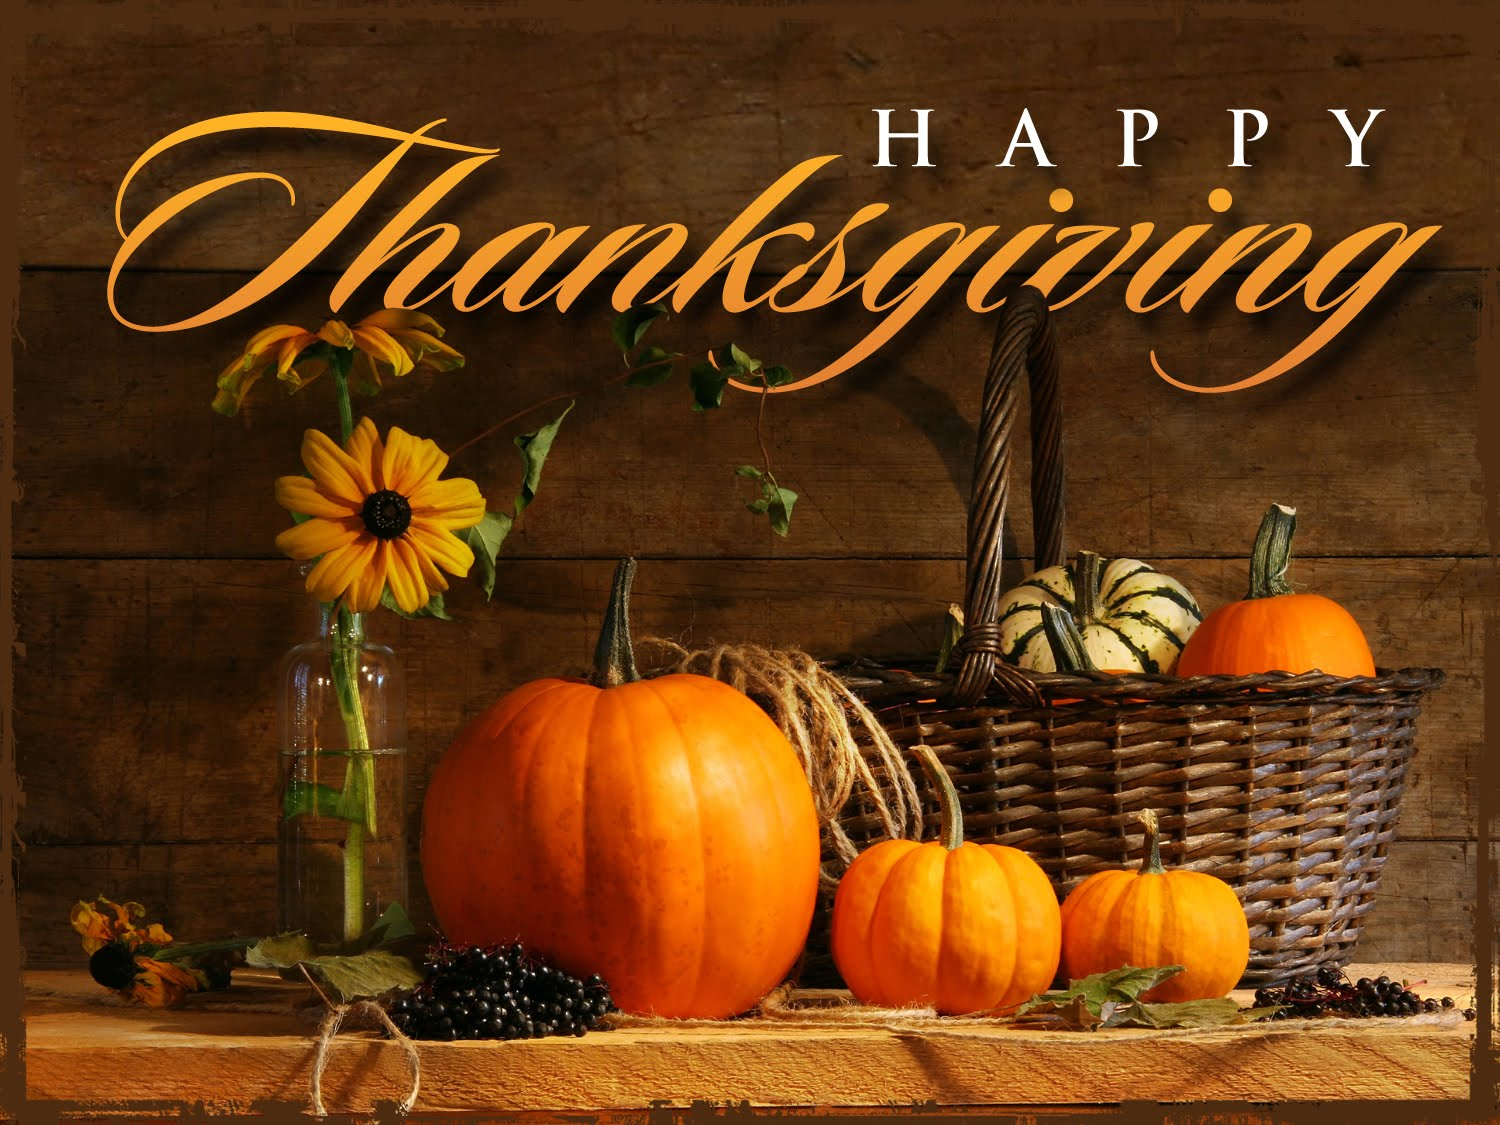 thanksgiving travel tips from the capitol corridor train